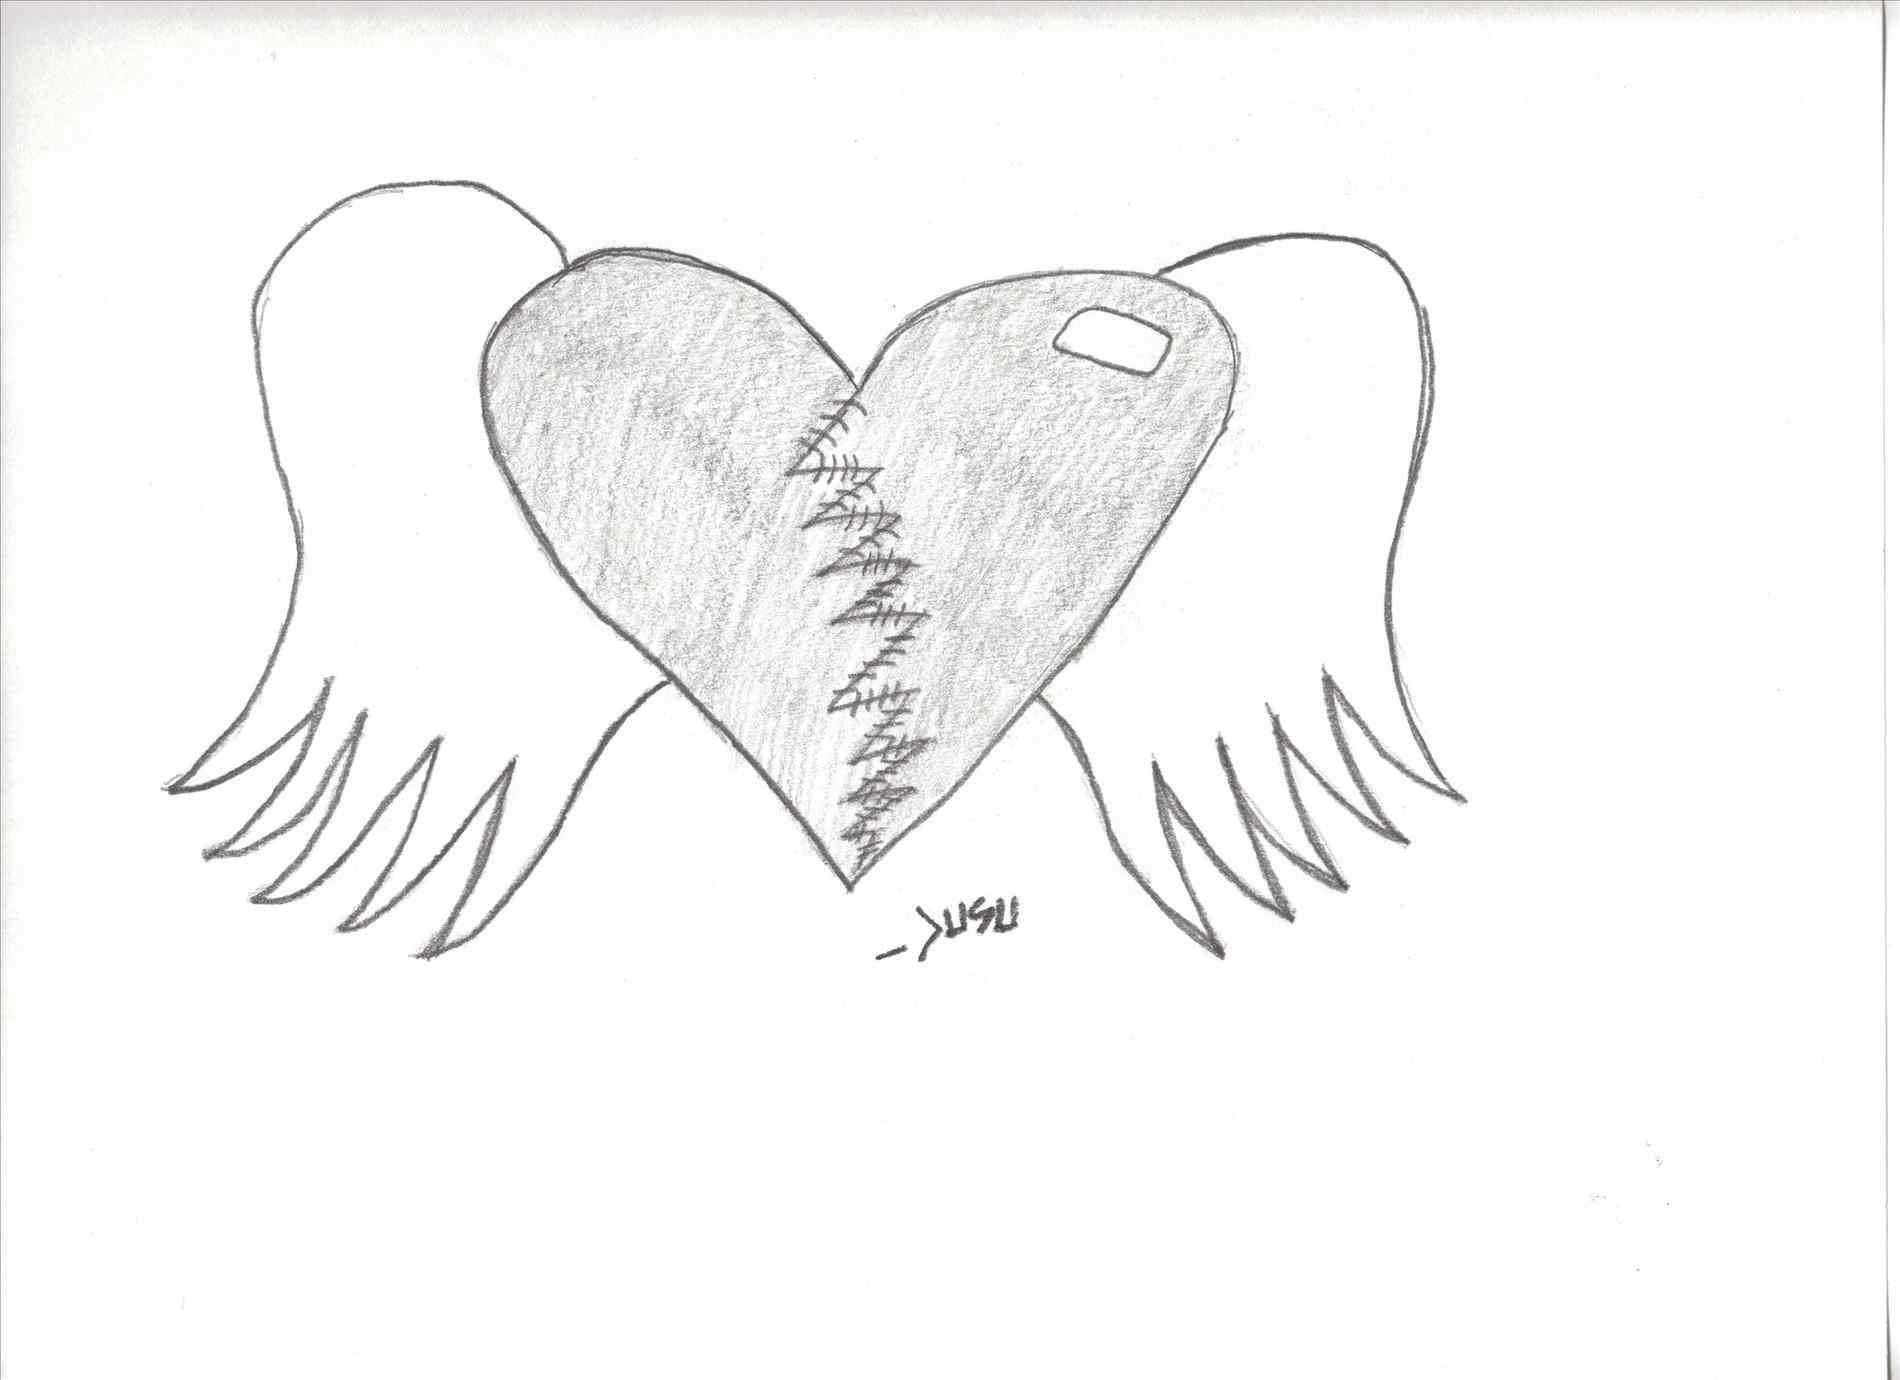 1900x1380 Drawn Pencil And In Color Drawn Heart Music Drawings Pencil